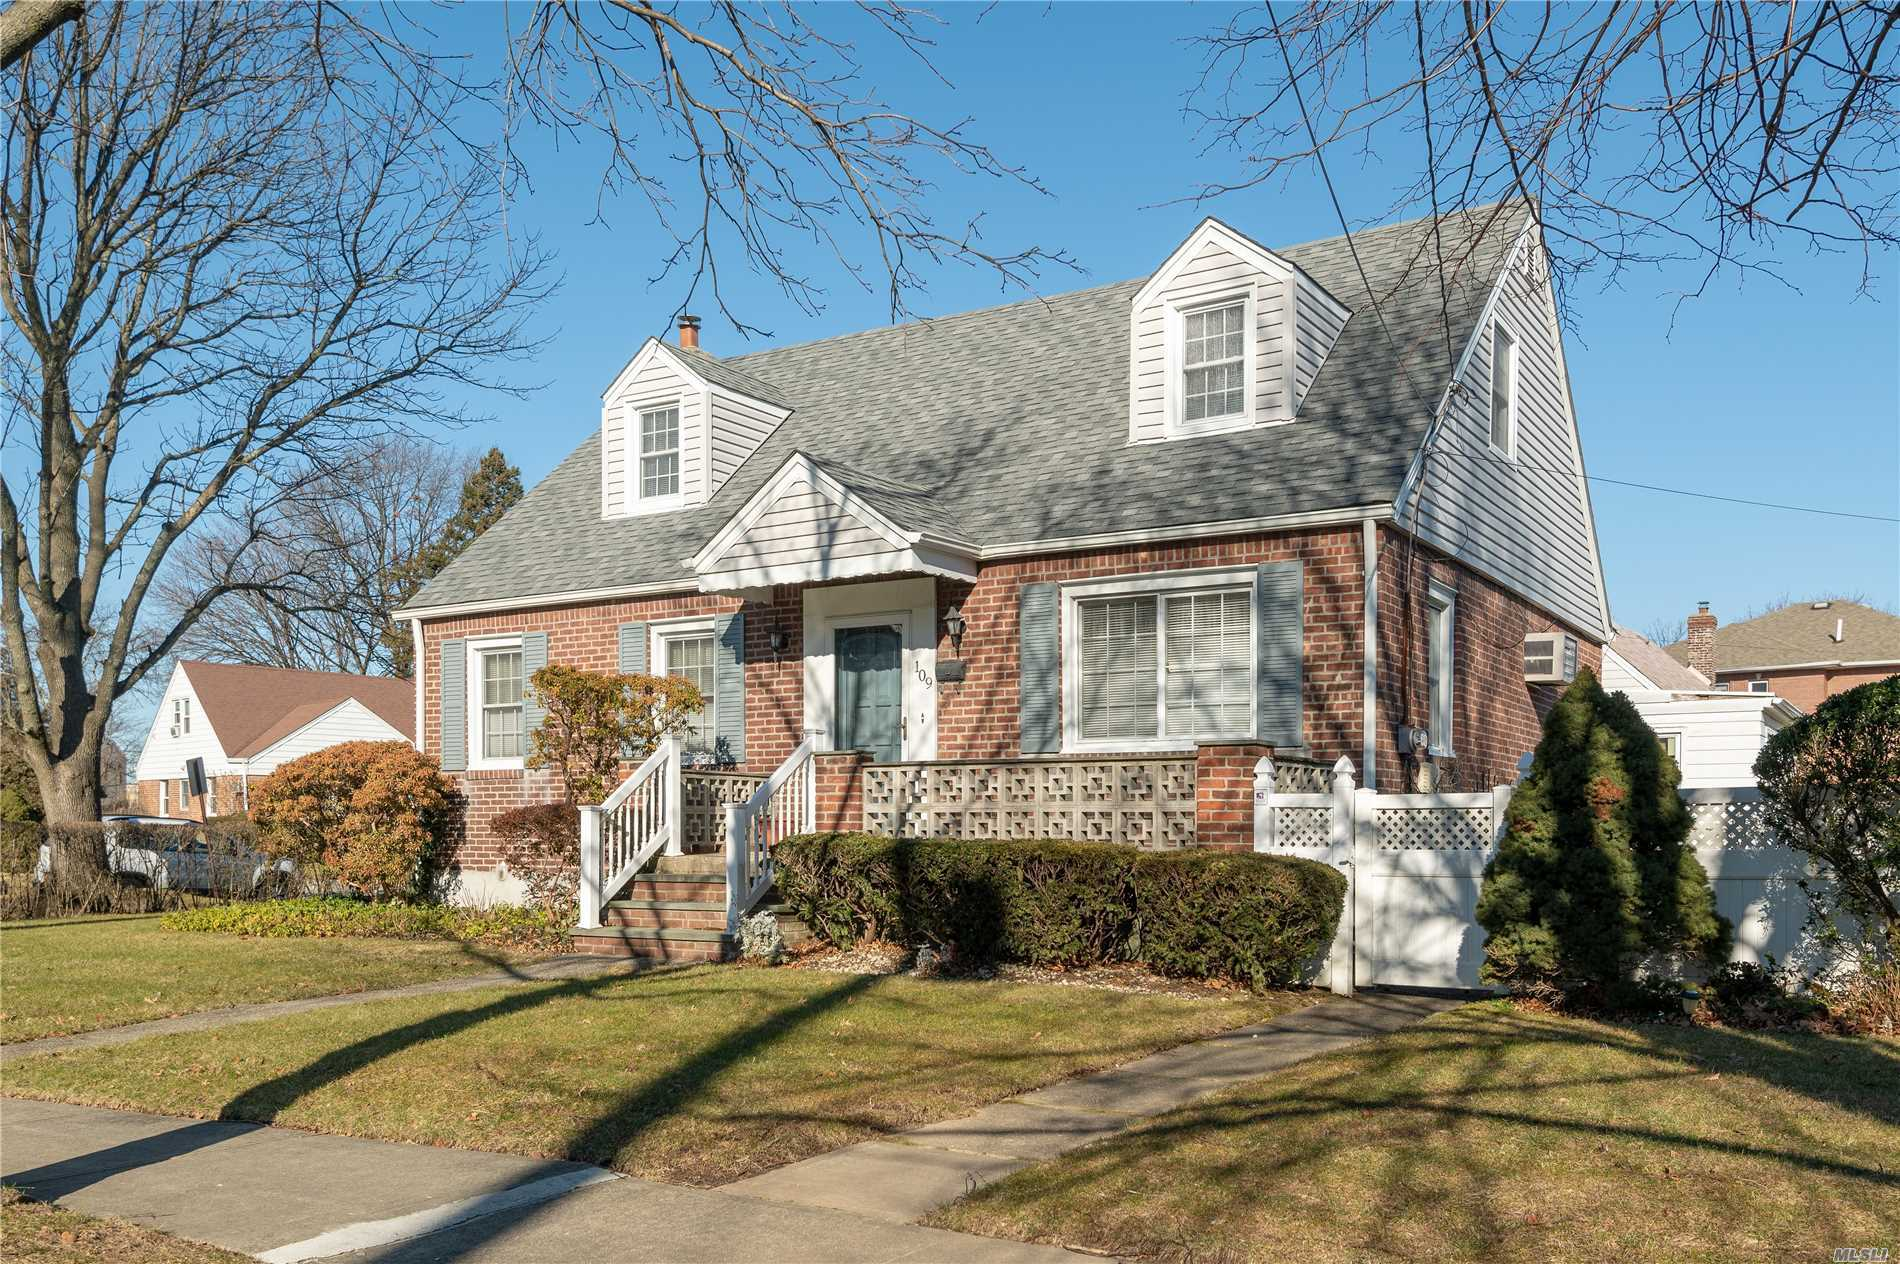 4 Bedrooms, 2 Baths, Brick Wide Line Cape,  New Kitchen, Herrick School District, Great Big Back Yard, Finished Basement. Come & See.